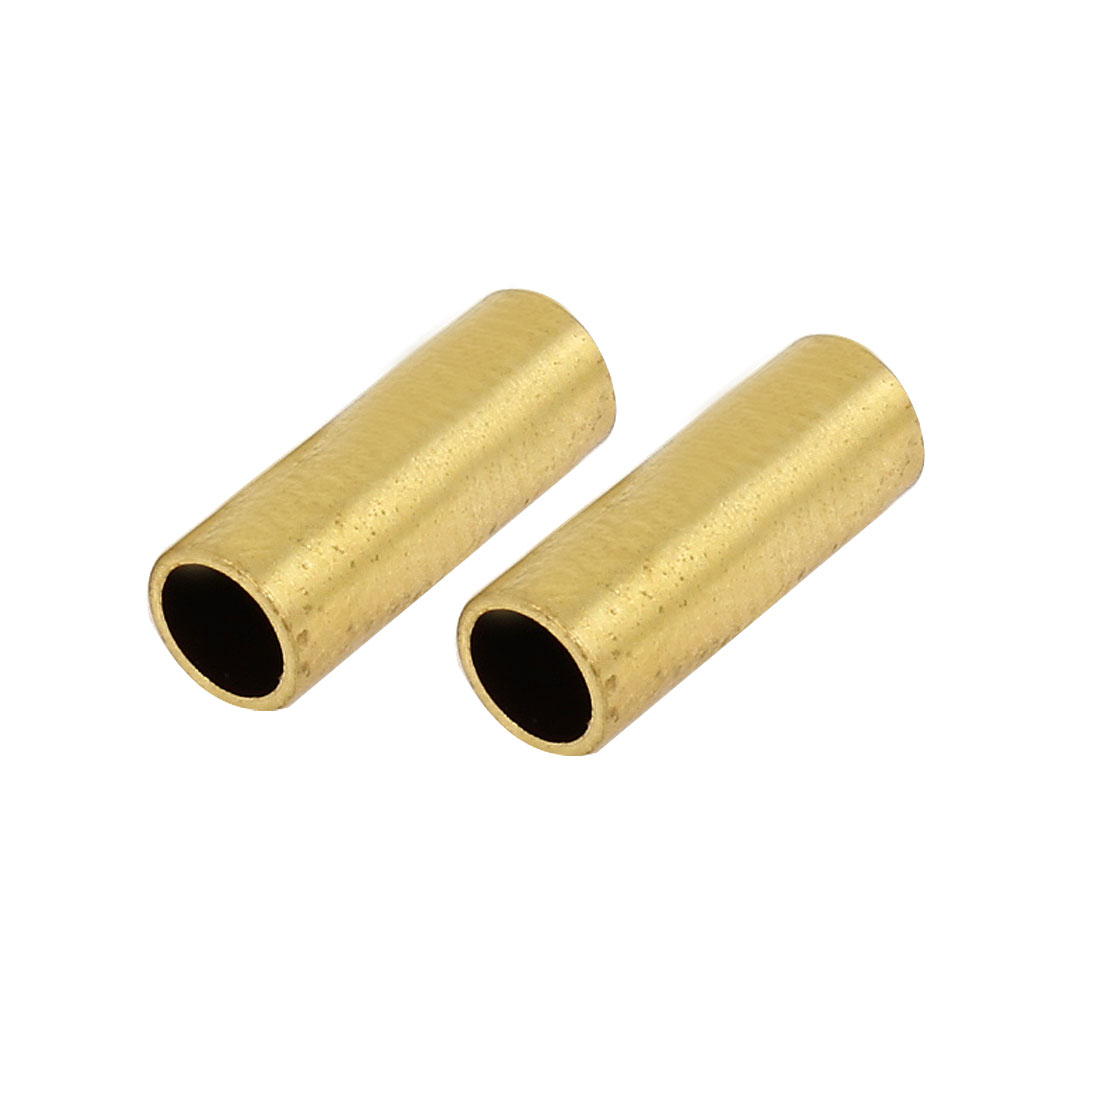 2Pcs 4mm x 4.76mm x 9mm Split Type Cylinder Shape Gold Tone Metal Sleeve Connect Fitting Adapter for RC Model Boat Ship